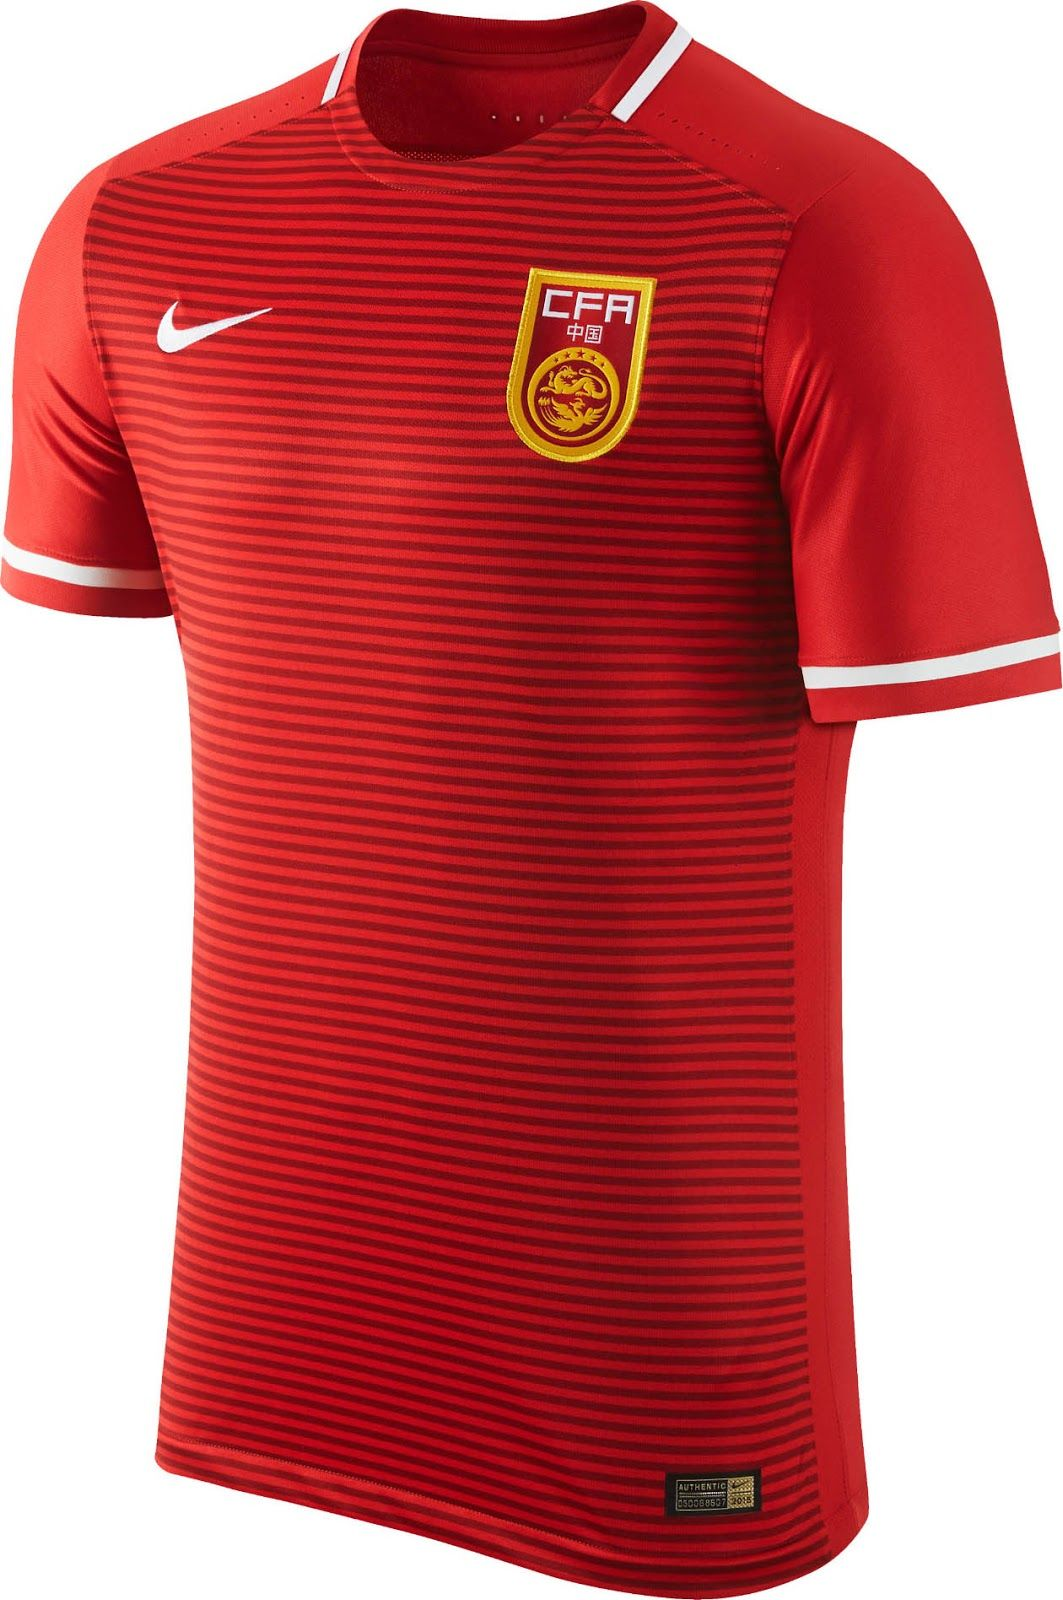 9a1e3311b Nike China 2015-2016 Home Kit Released - Footy Headlines Football Team Kits